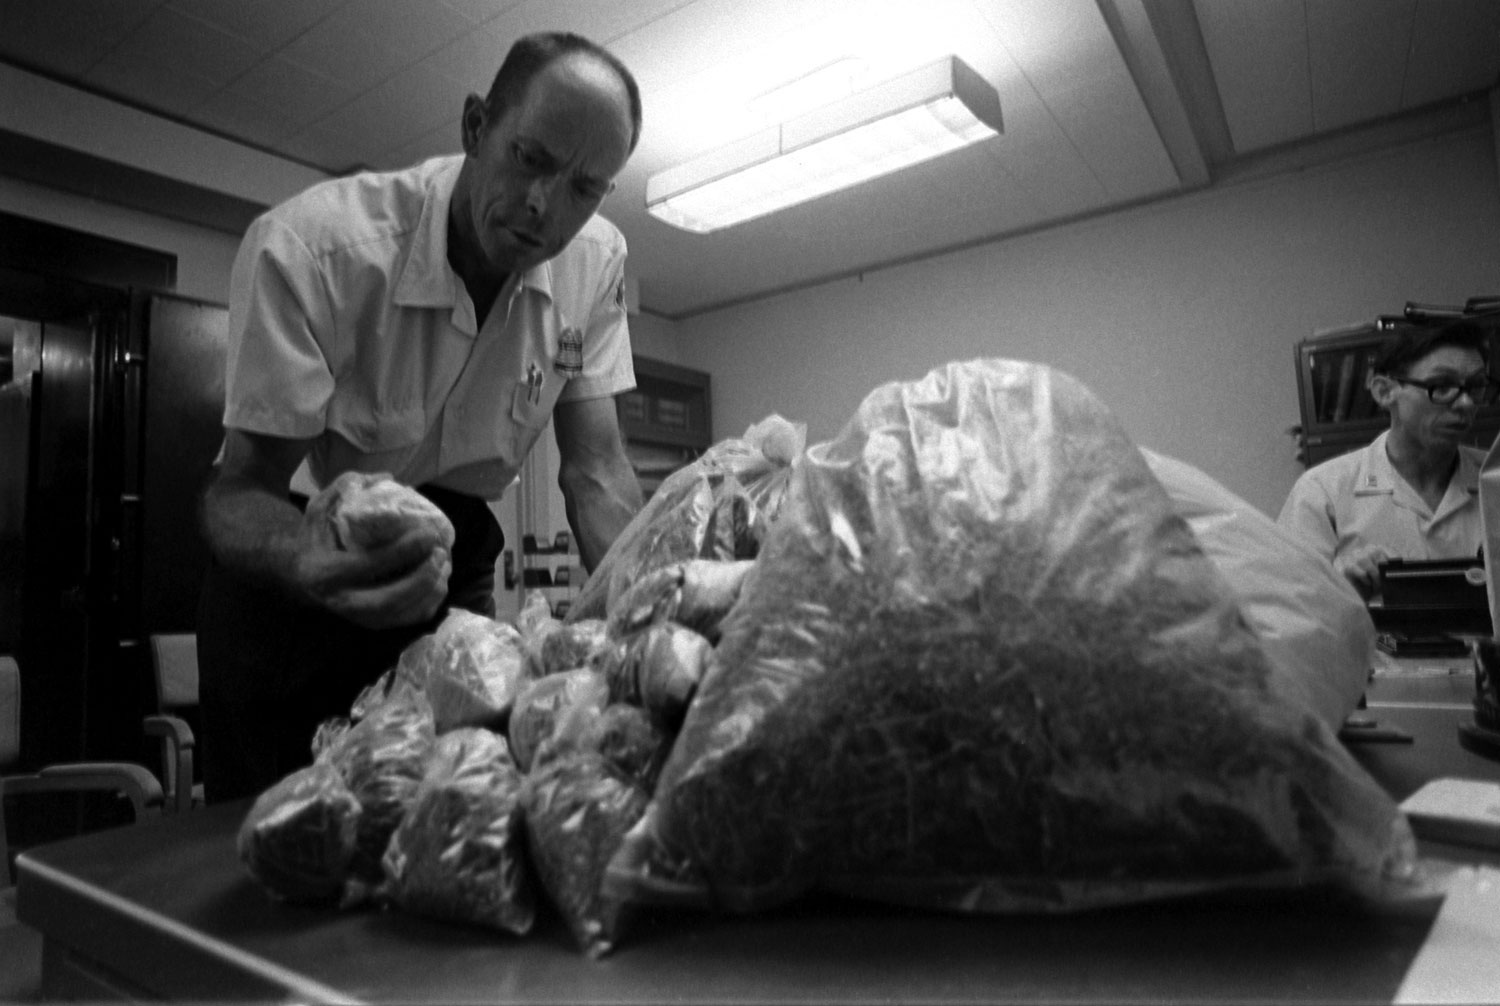 U.S. Customs agents with seized marijuana.